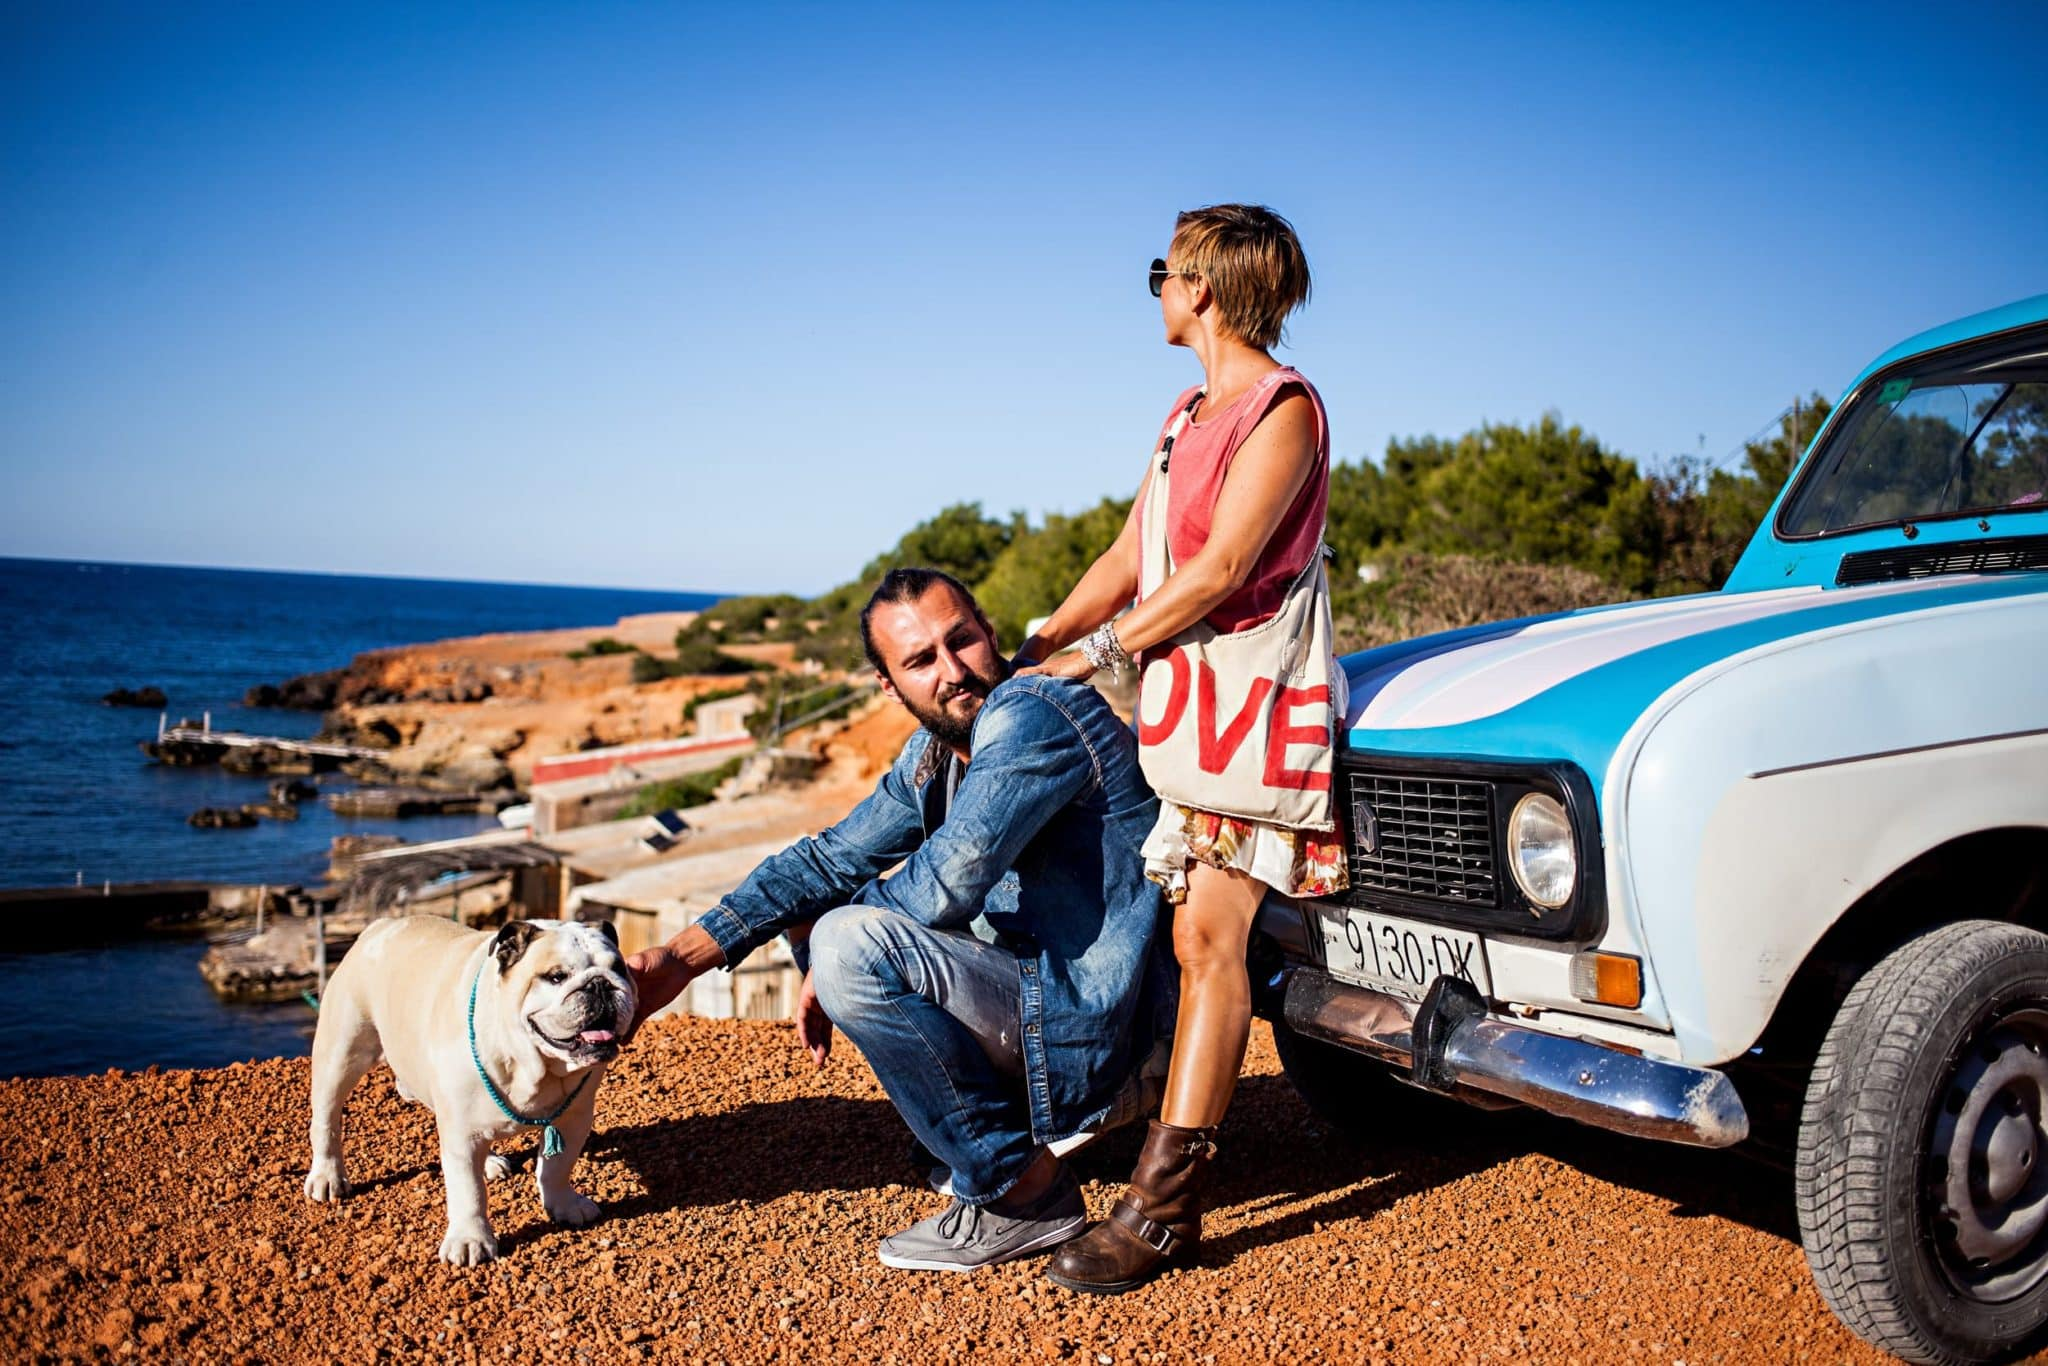 True Love on Ibiza - photographed by Holger Altgeld